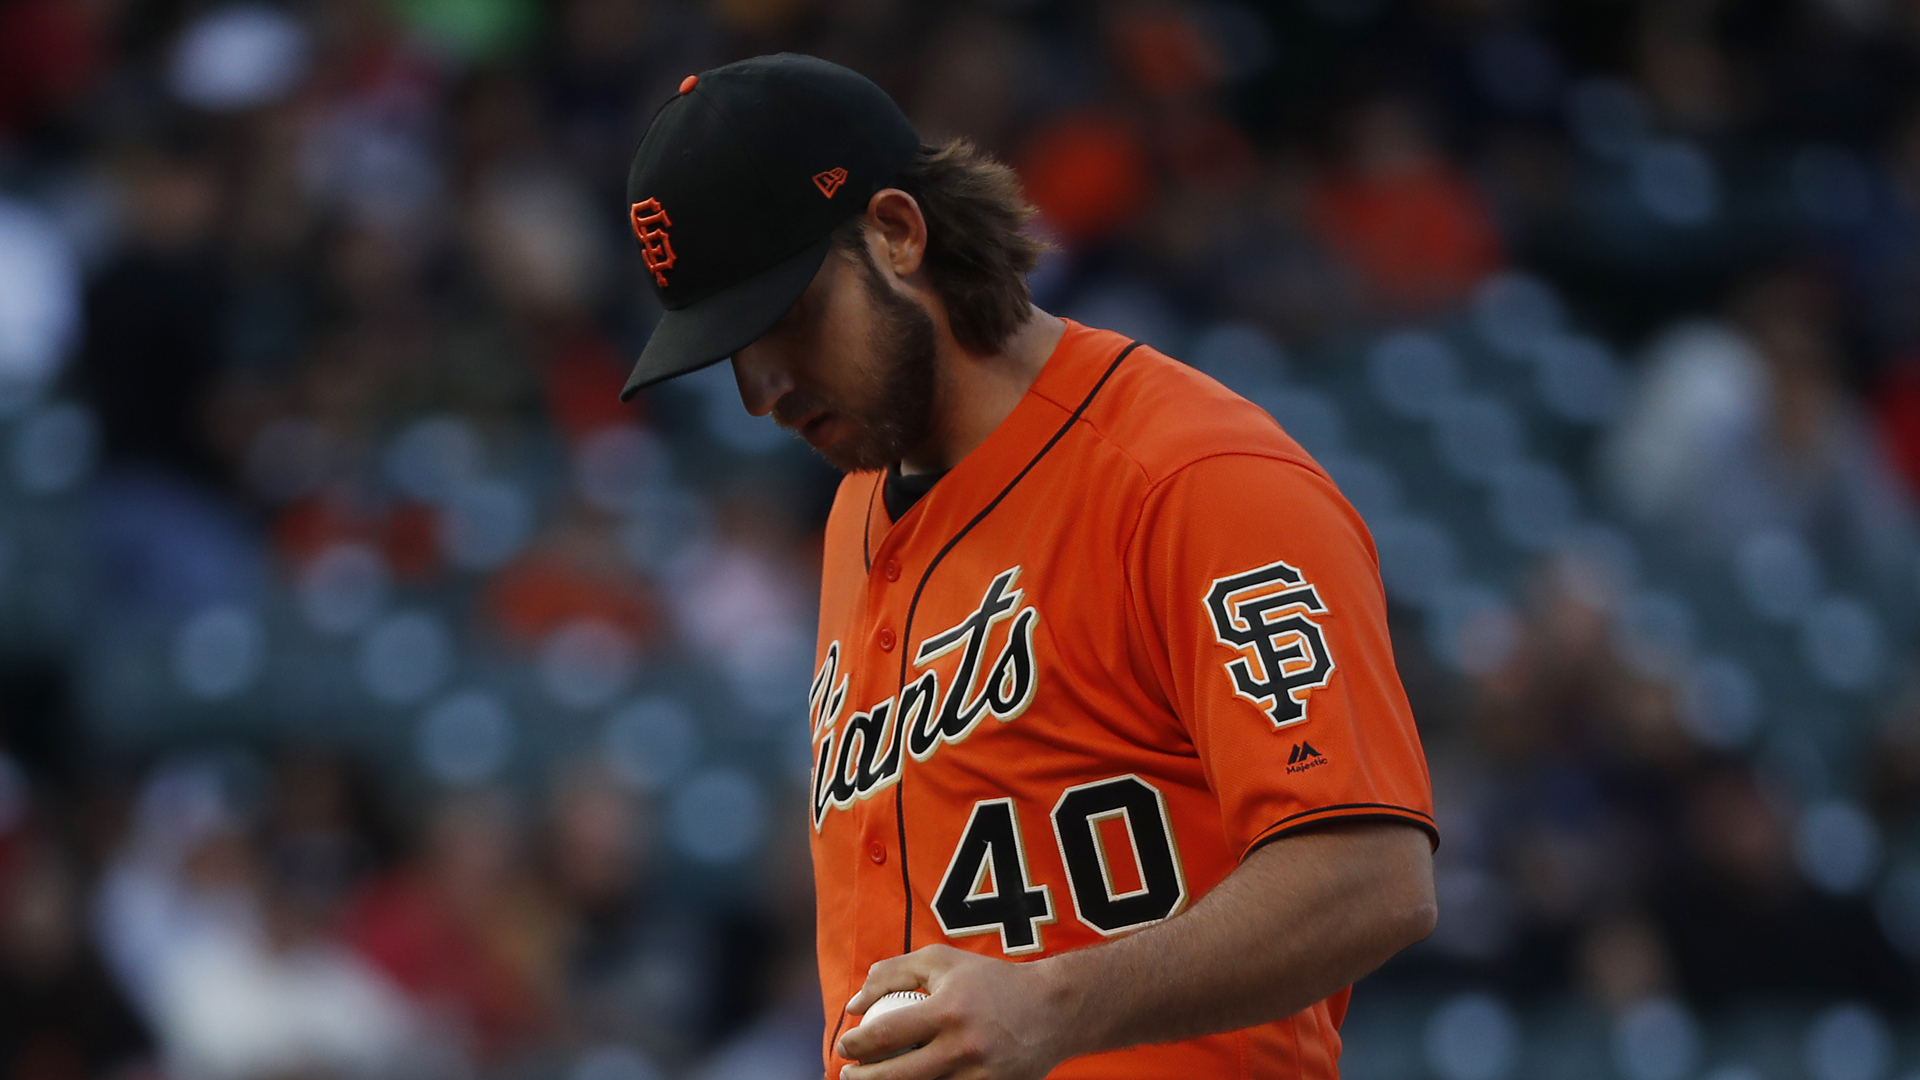 Giants RHP Samardzija out with strained pectoral